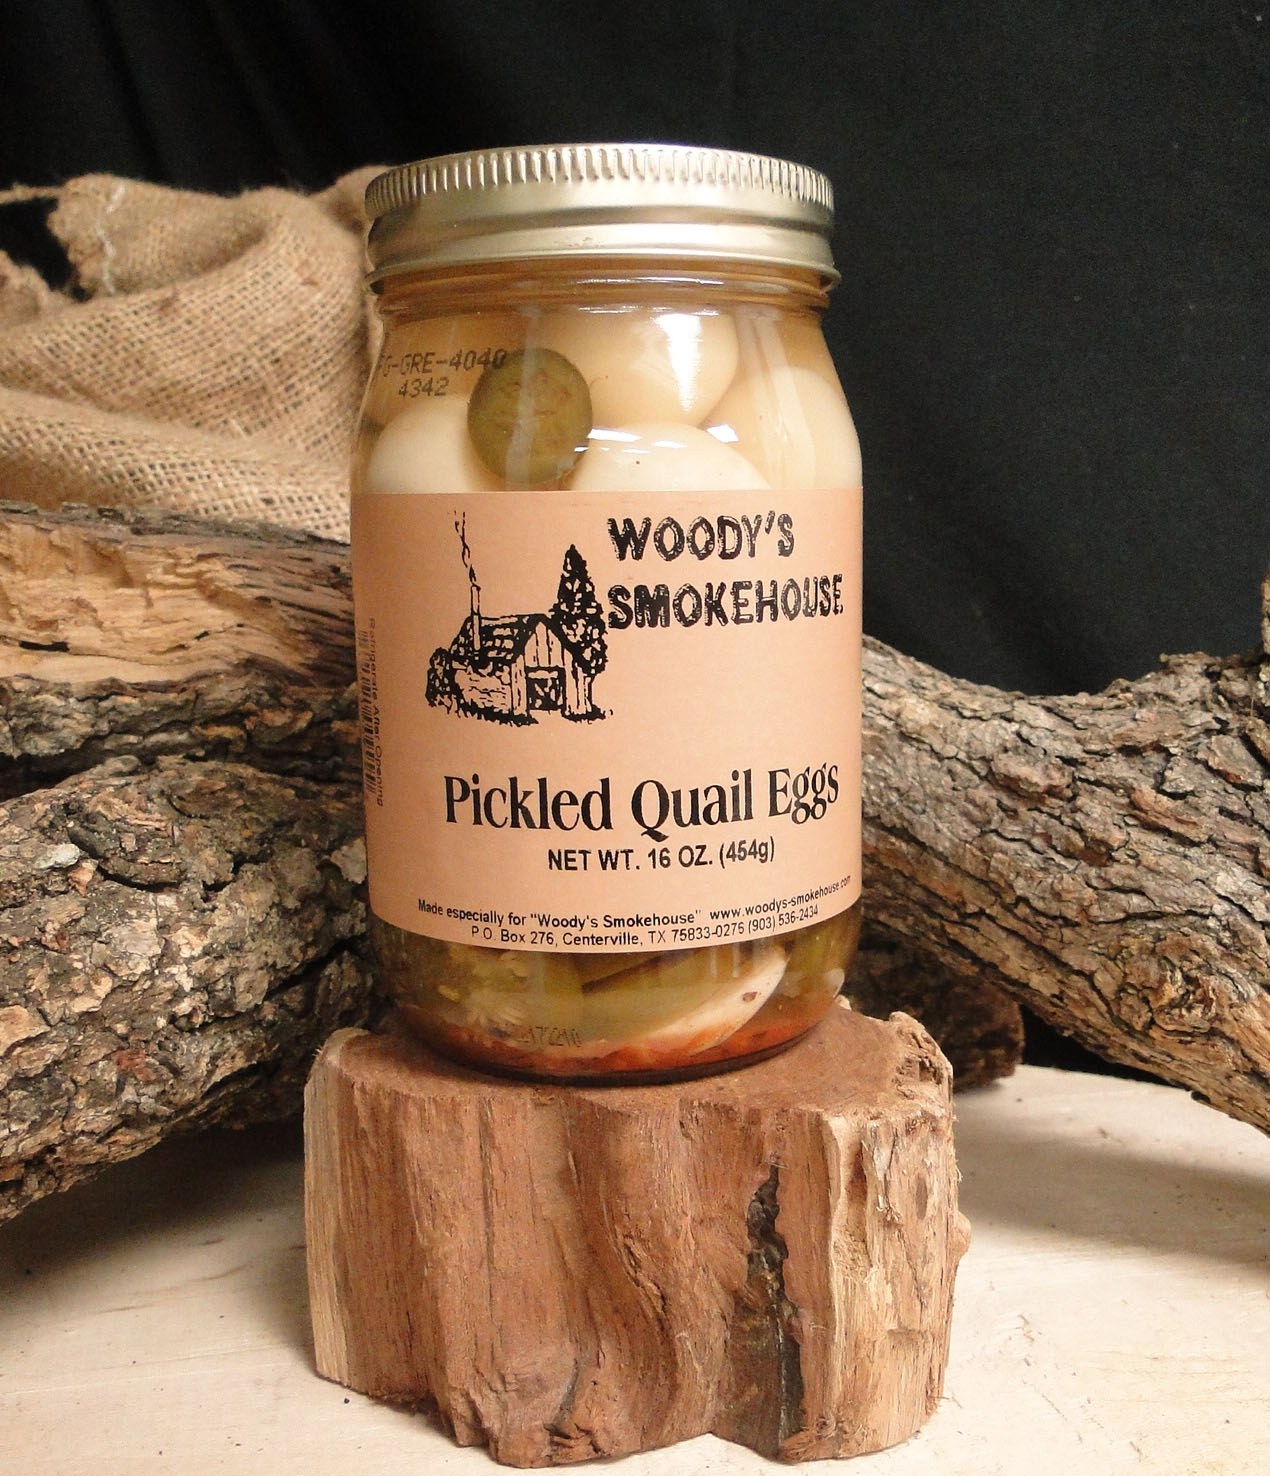 Pickled Quail Eggs - Woody's Smokehouse